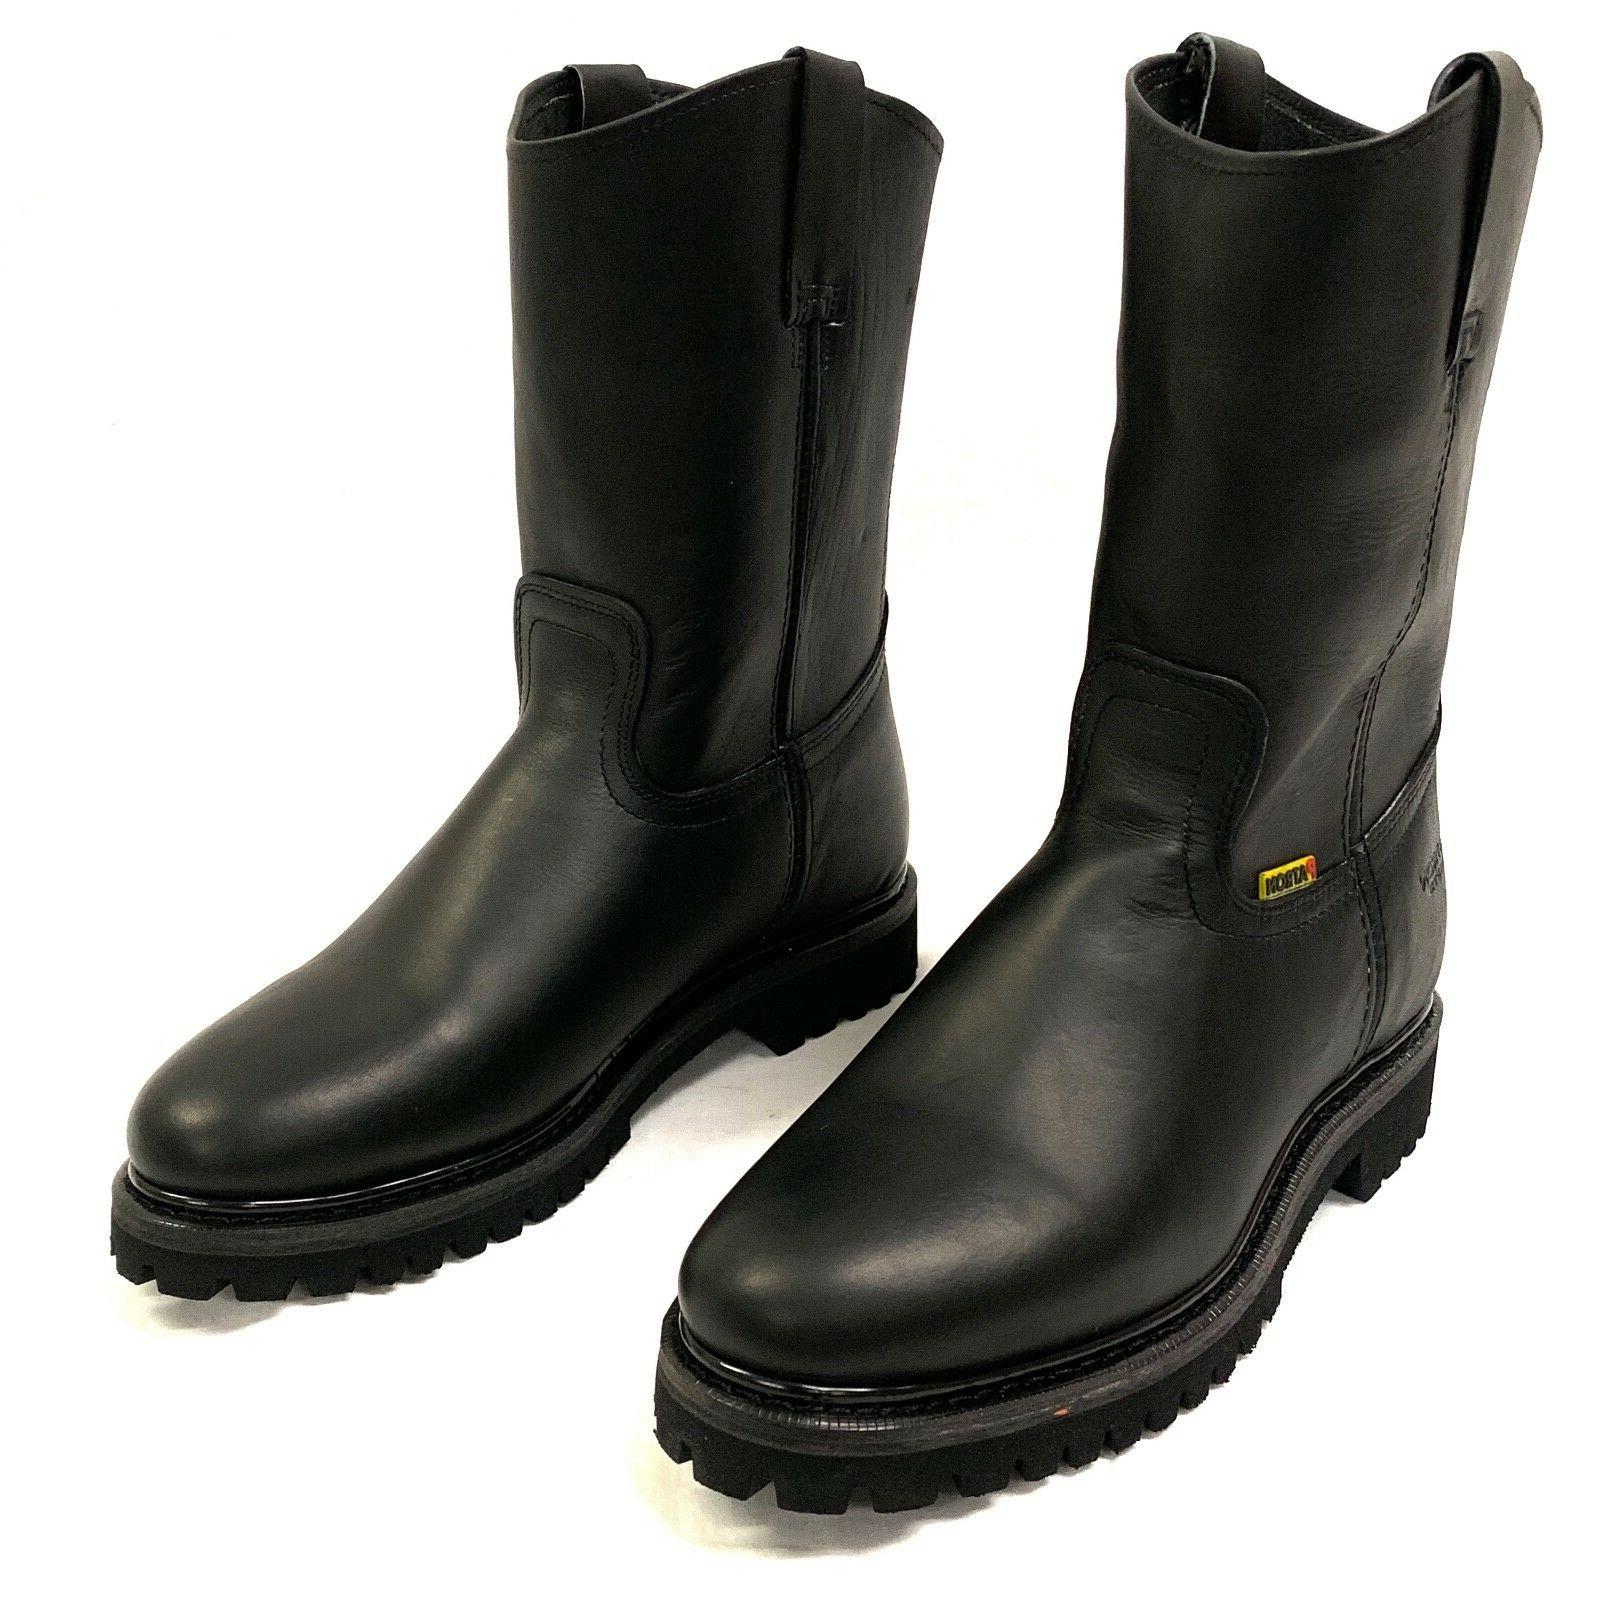 MEN'S BOOTS LEATHER BLACK COWBOY PULL ON